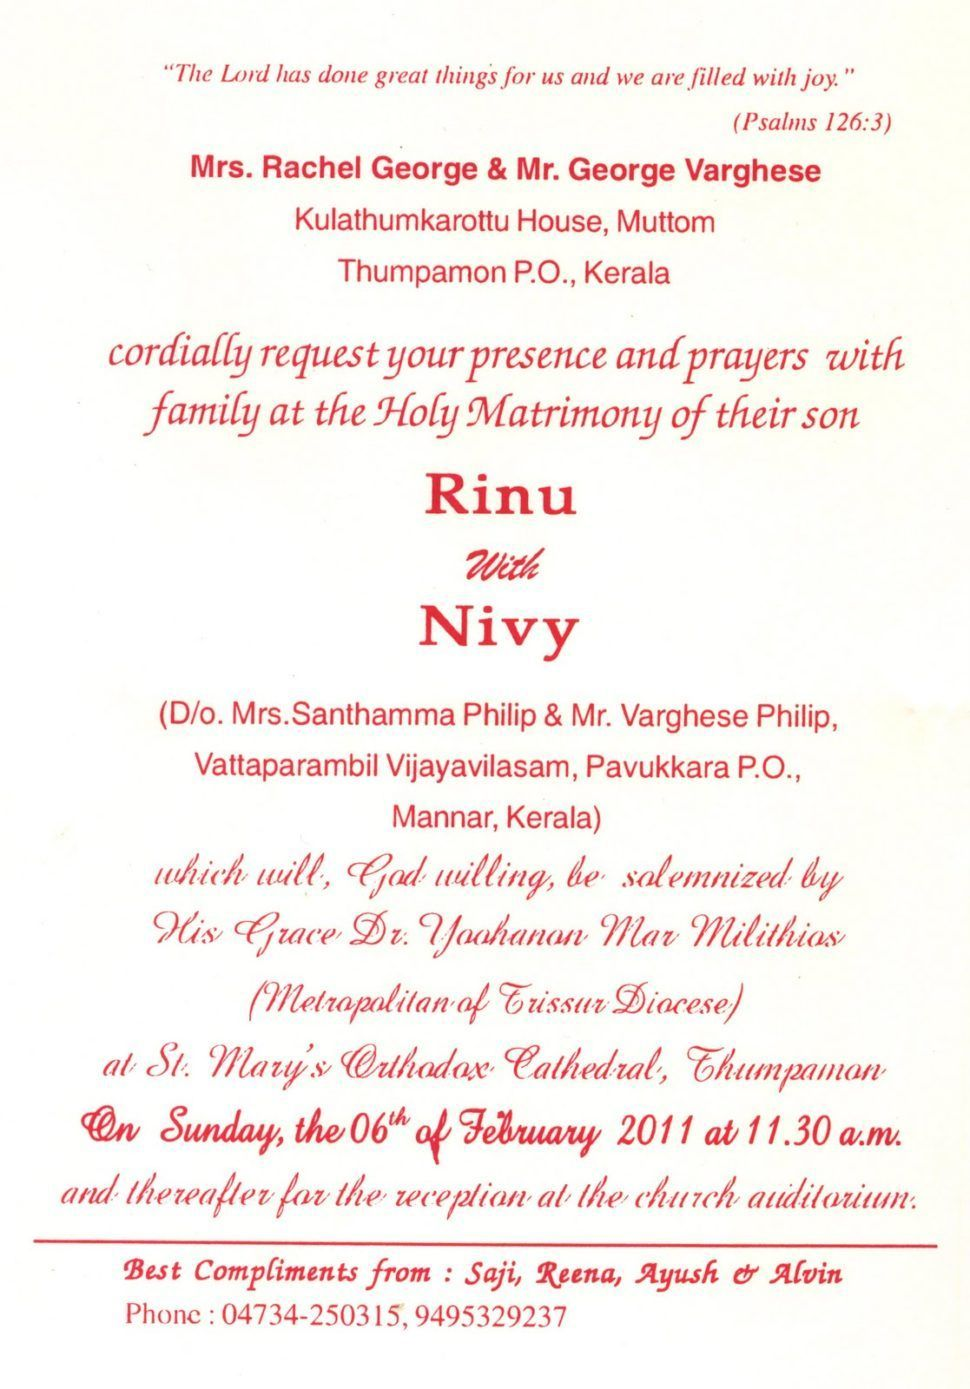 Christian Wedding Invitation Cards In Kerala Check more at http